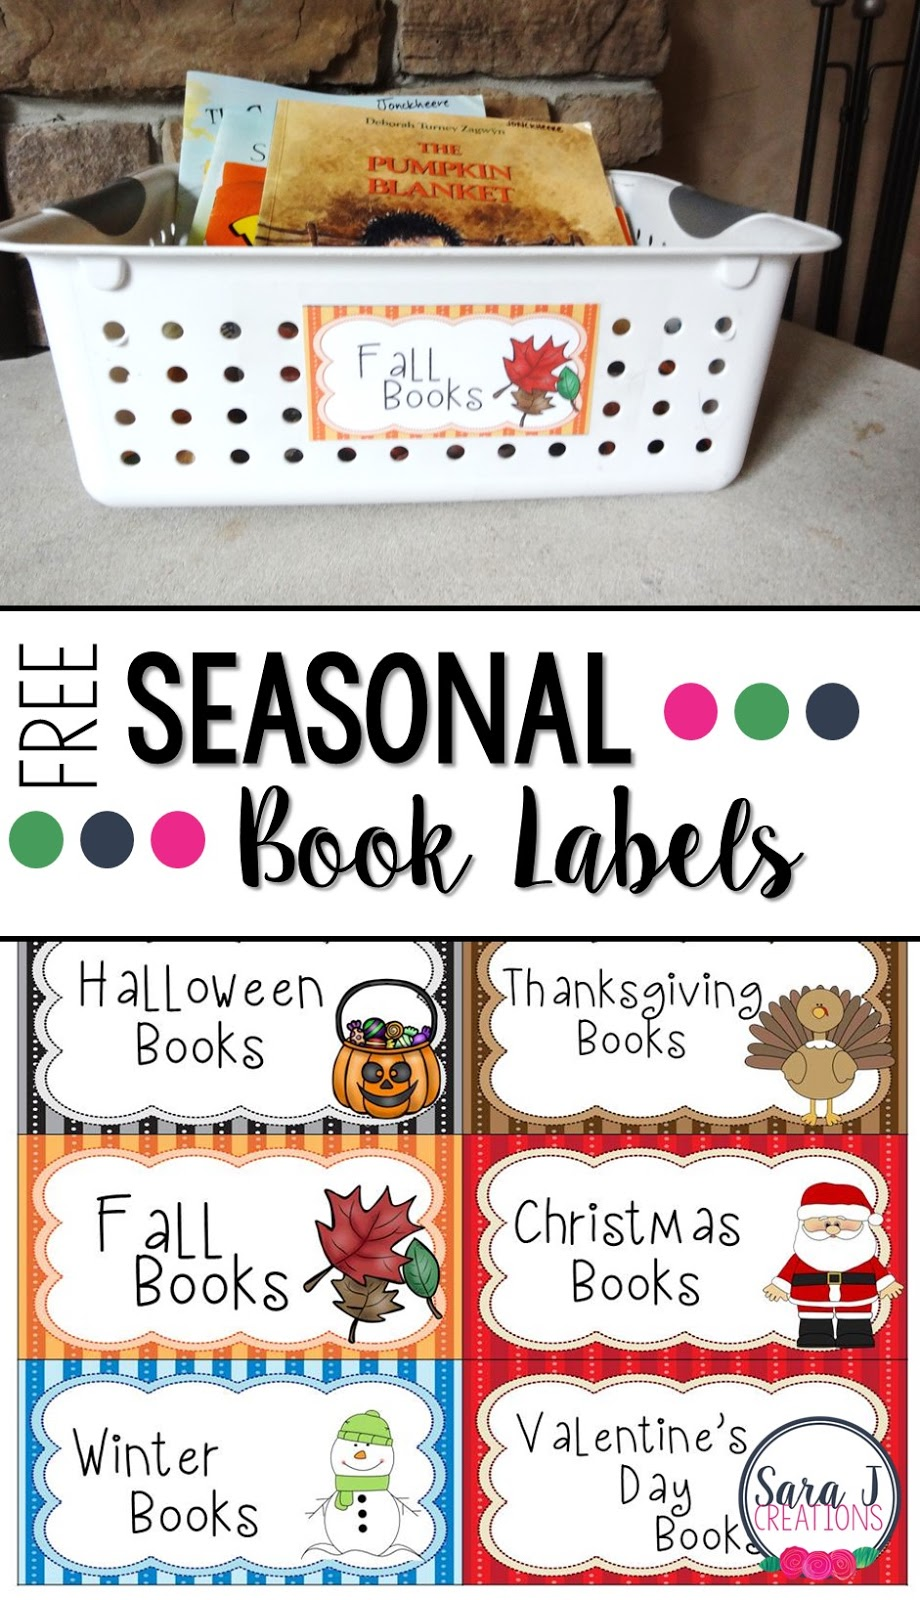 Free printable book labels!  Perfect for the classroom or home to change out books for each season and holiday.